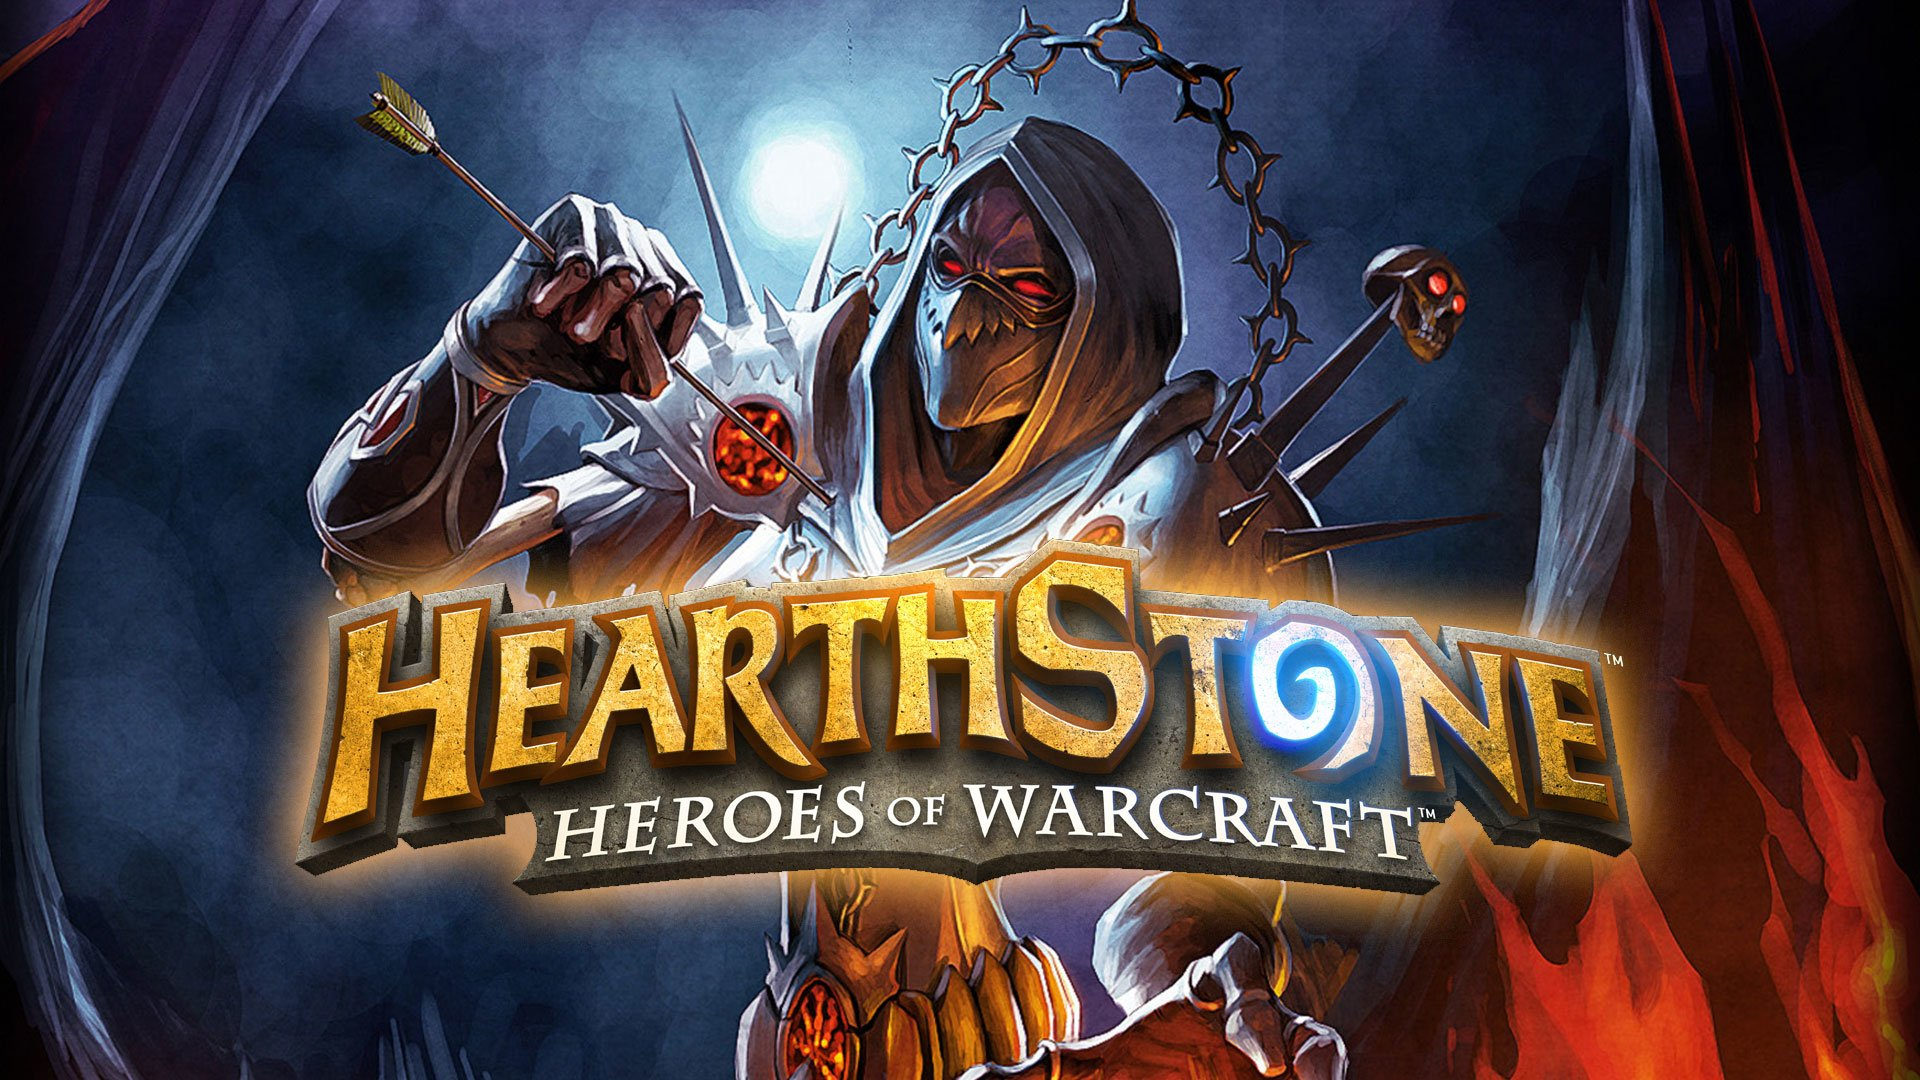 Video Game - Hearthstone: Heroes of Warcraft  Wallpaper